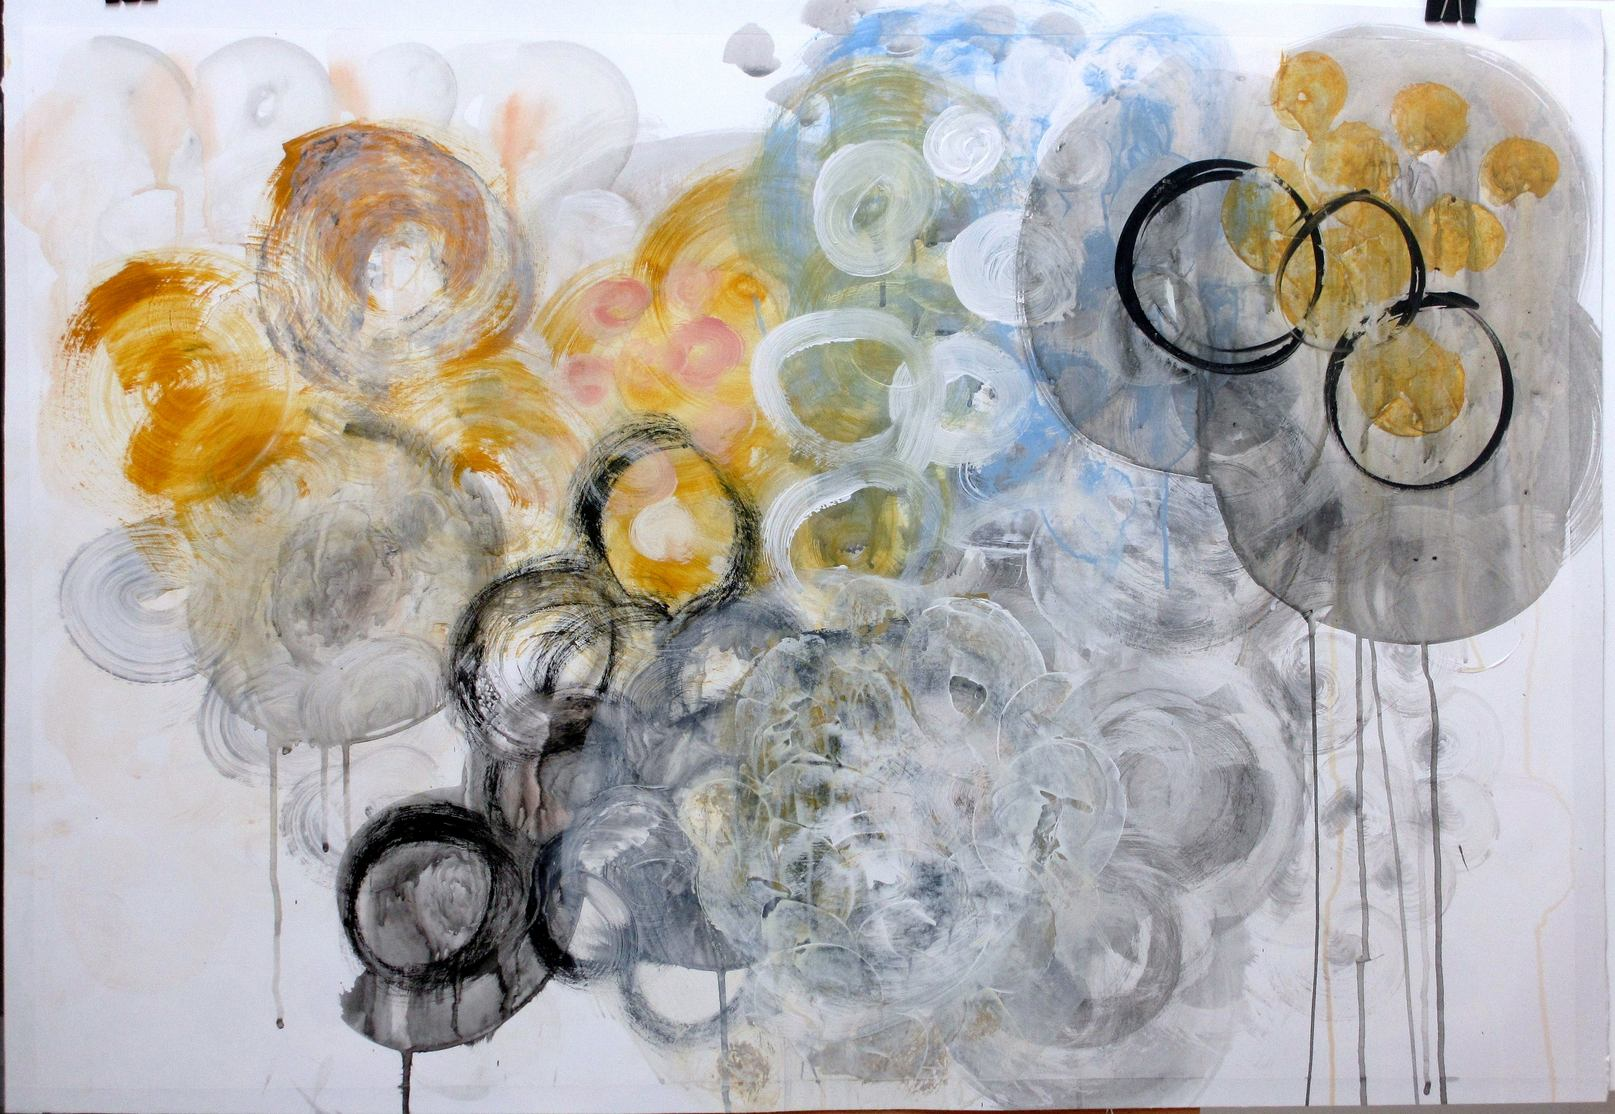 """Abstract painting """"Raindrops I"""". Artist Marina de Wit. Acrylic and gouache on paper. 100 x 70 cm. 2013"""